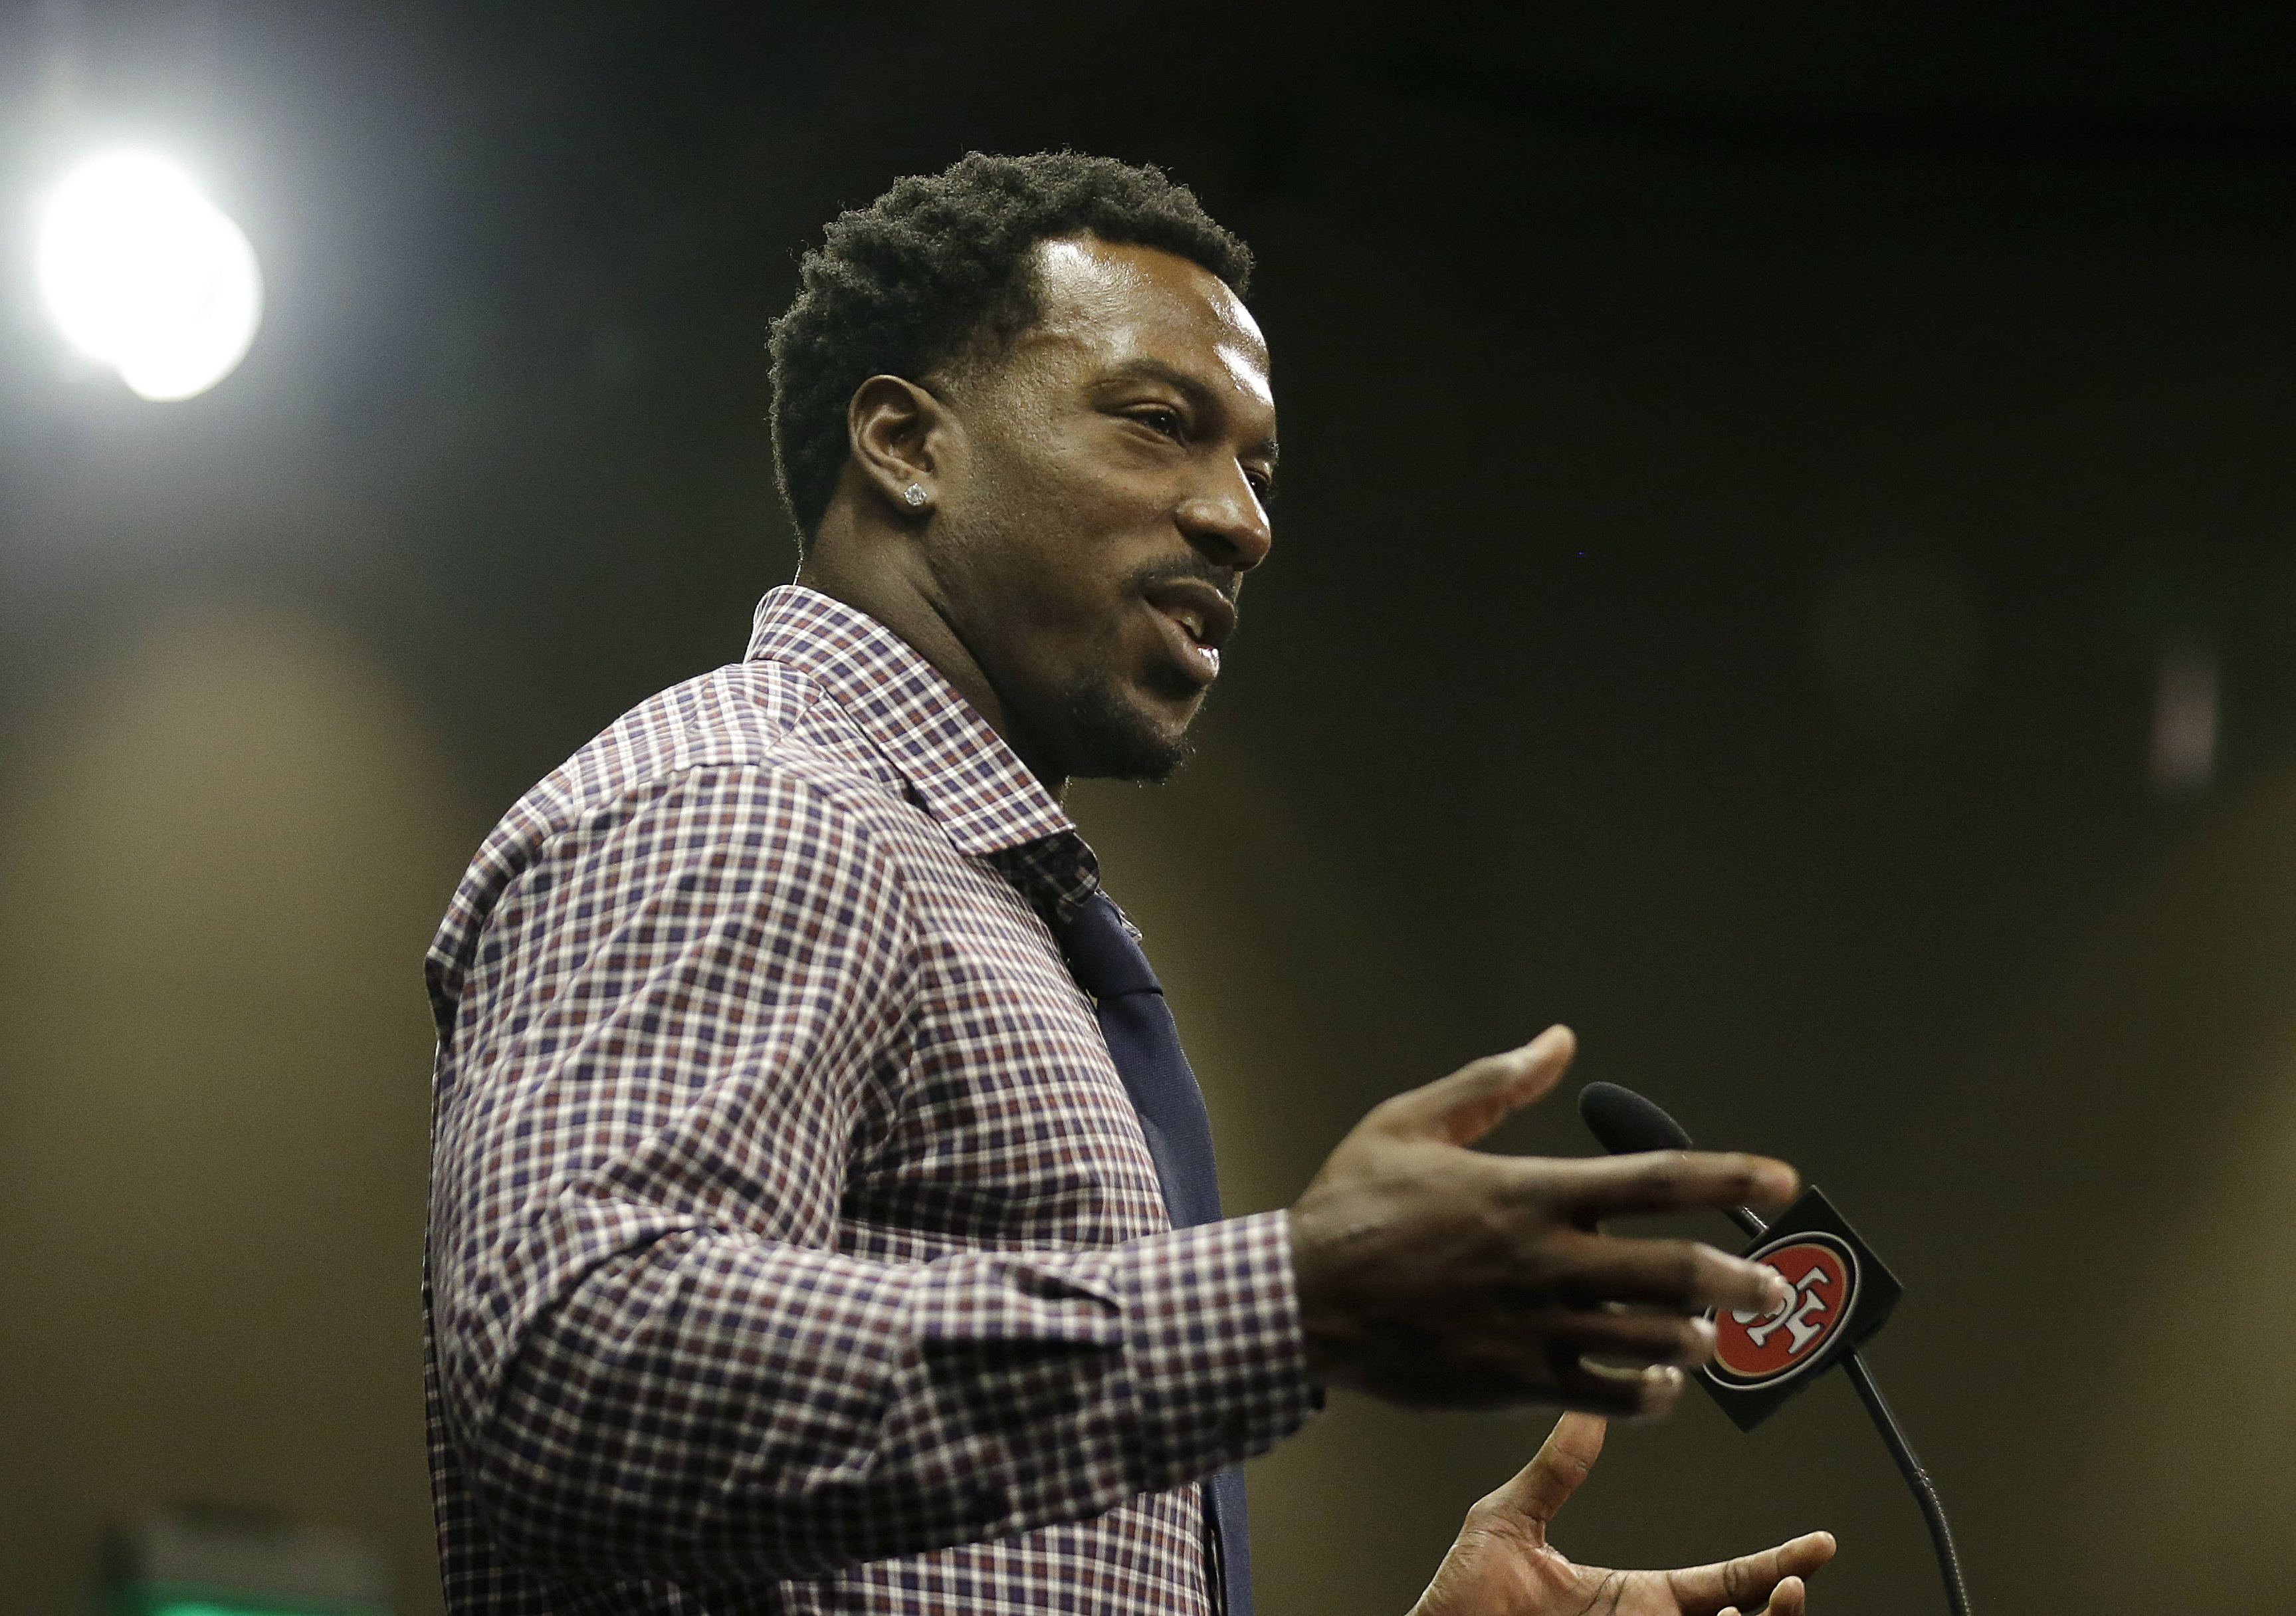 FILE - In this March 10, 2015, file photo, San Francisco 49ers linebacker Patrick Willis announces his retirement at a news conference at the 49ers' NFL football facility in Santa Clara, Calif. NFL players have brought a whole new meaning to early retirem